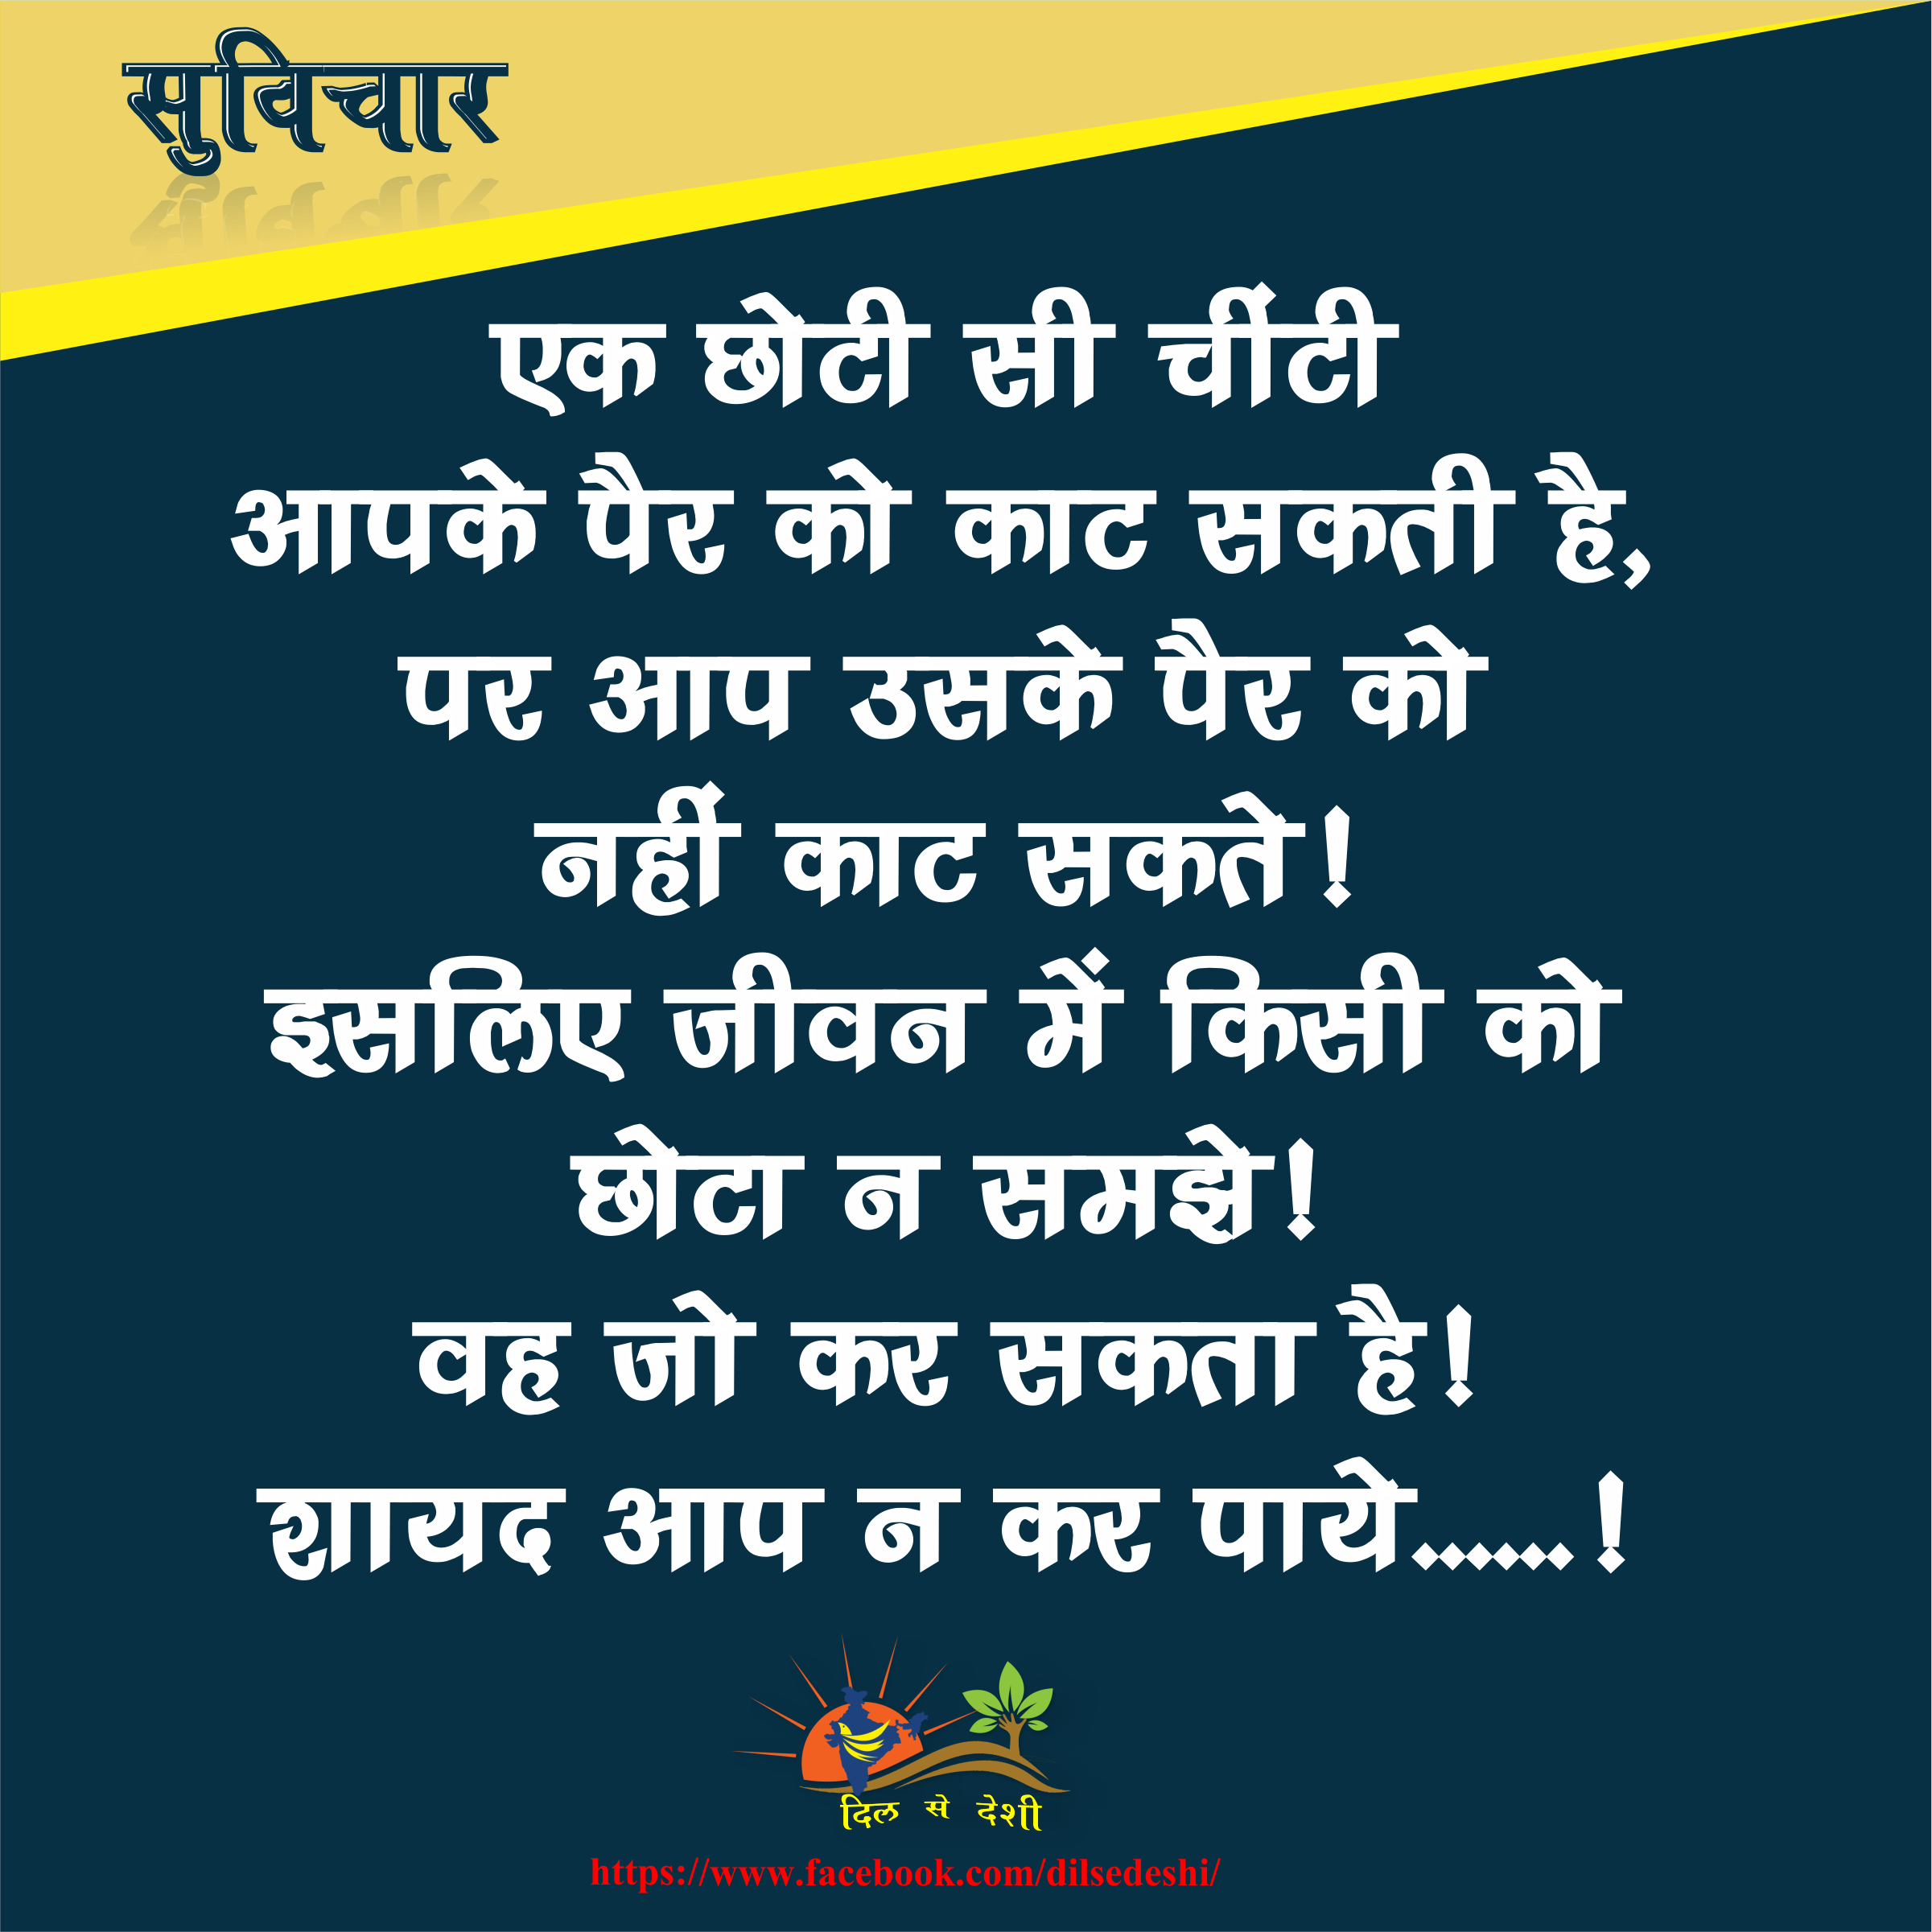 Dilsedeshi Hindi Suvichar Quotes Thought Remember Quotes Good Morning Quotes Knowledge Quotes [ 2401 x 2401 Pixel ]